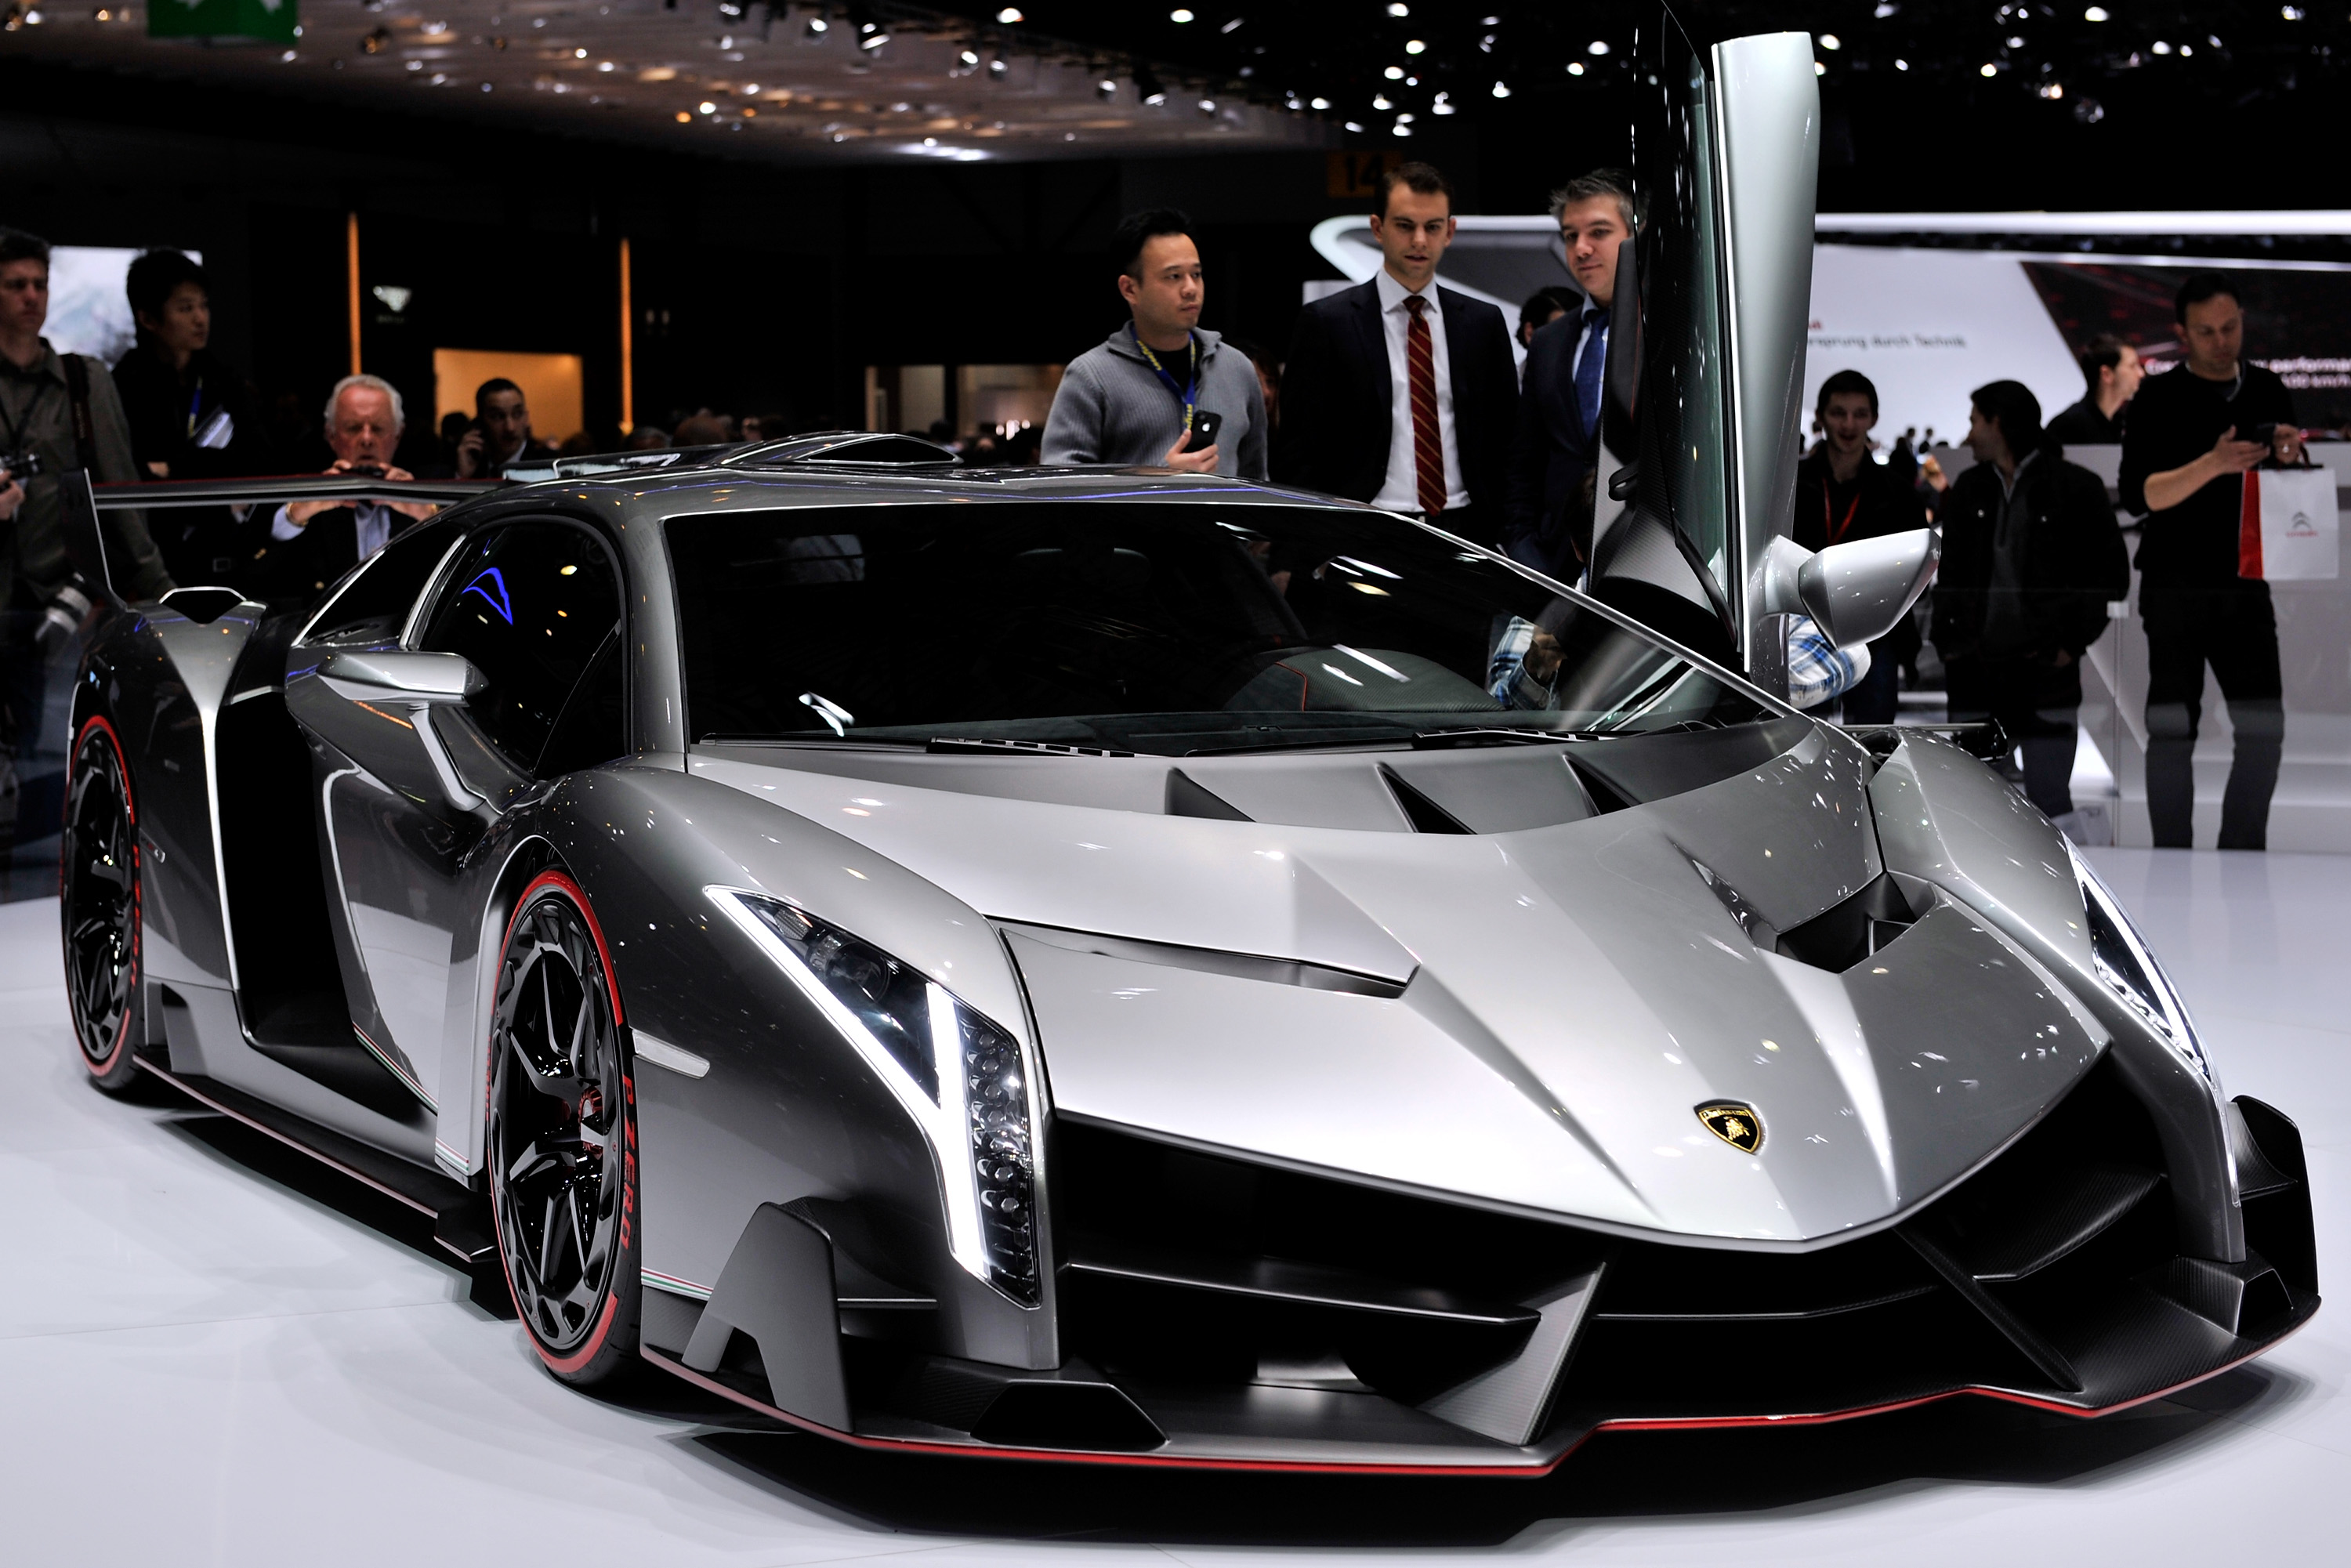 Ultra-Rare Lamborghini Veneno Coupe For Sale At $9.4 Million